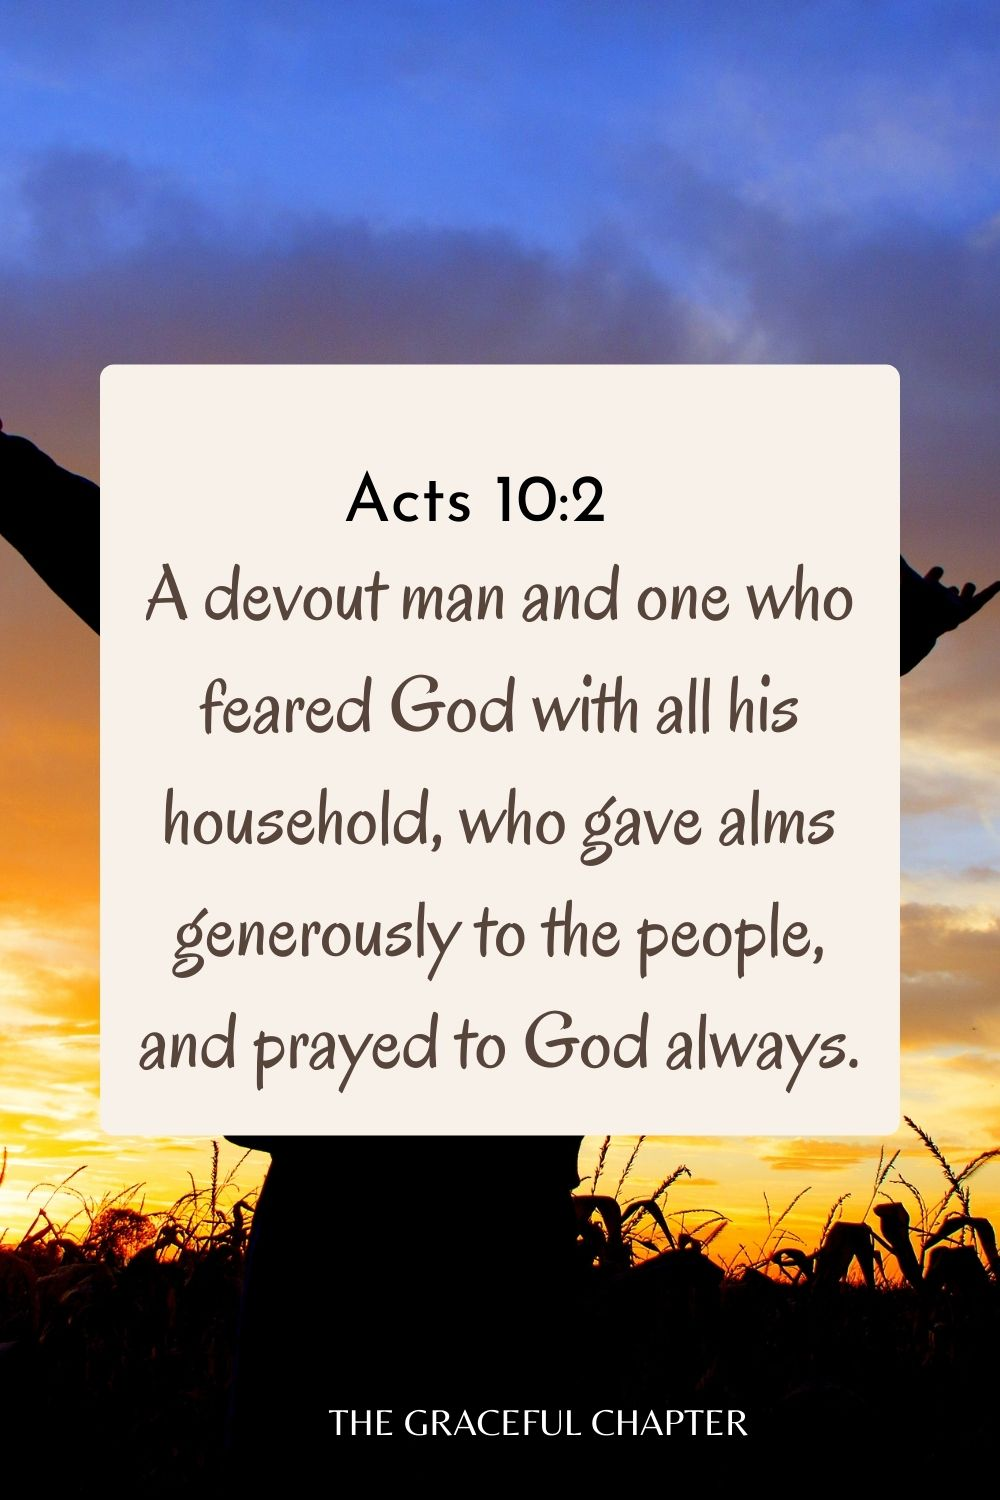 A devout man and one who feared God with all his household, who gave alms generously to the people, and prayed to God always. Acts 10:2